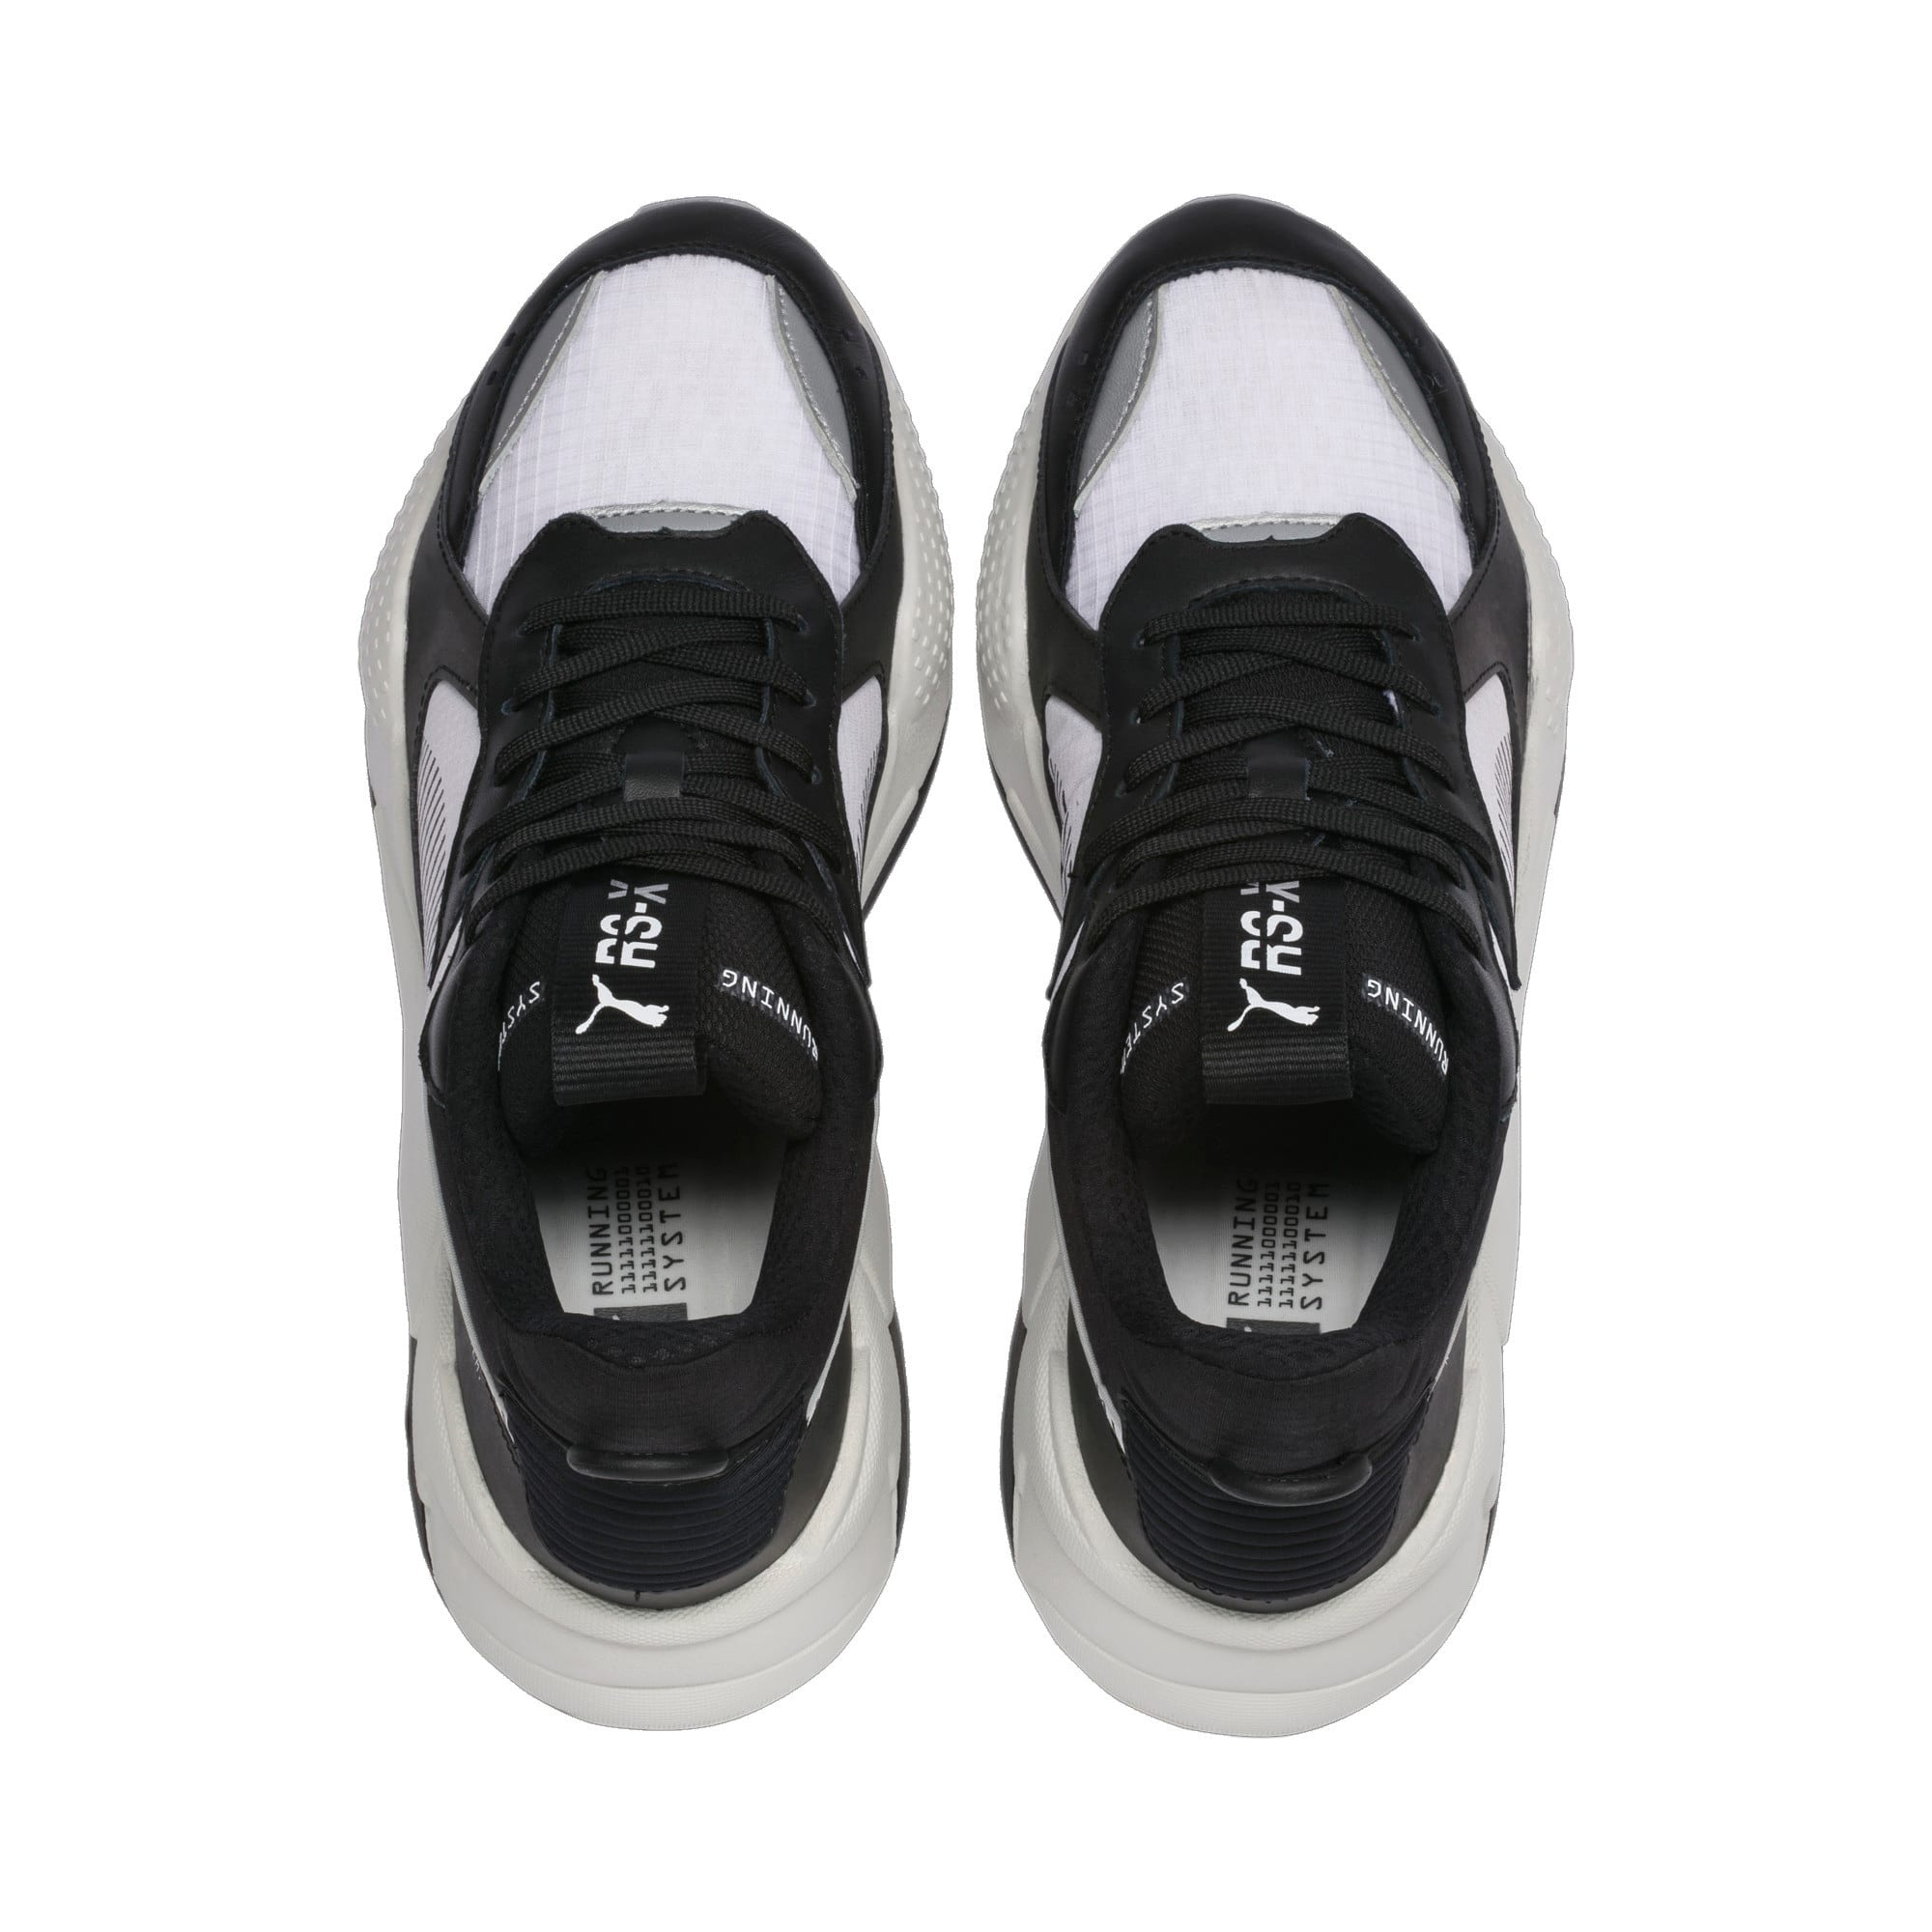 Thumbnail 7 of RS-X TECH スニーカー, Puma Black-Vaporous Gray, medium-JPN